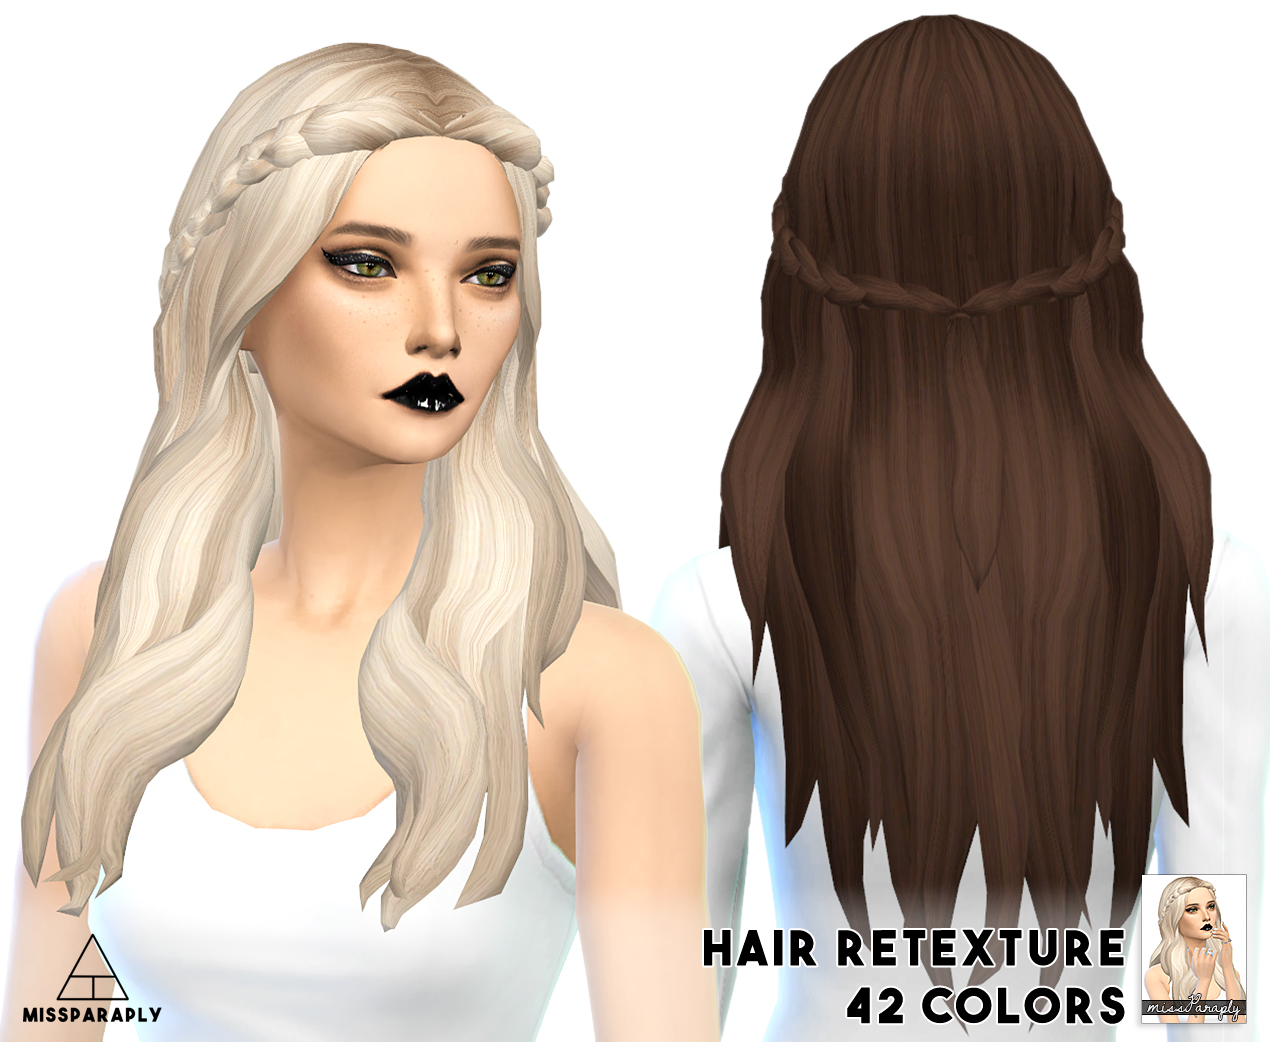 Kiara24 Sensitive Hair retexture by Miss Paraply